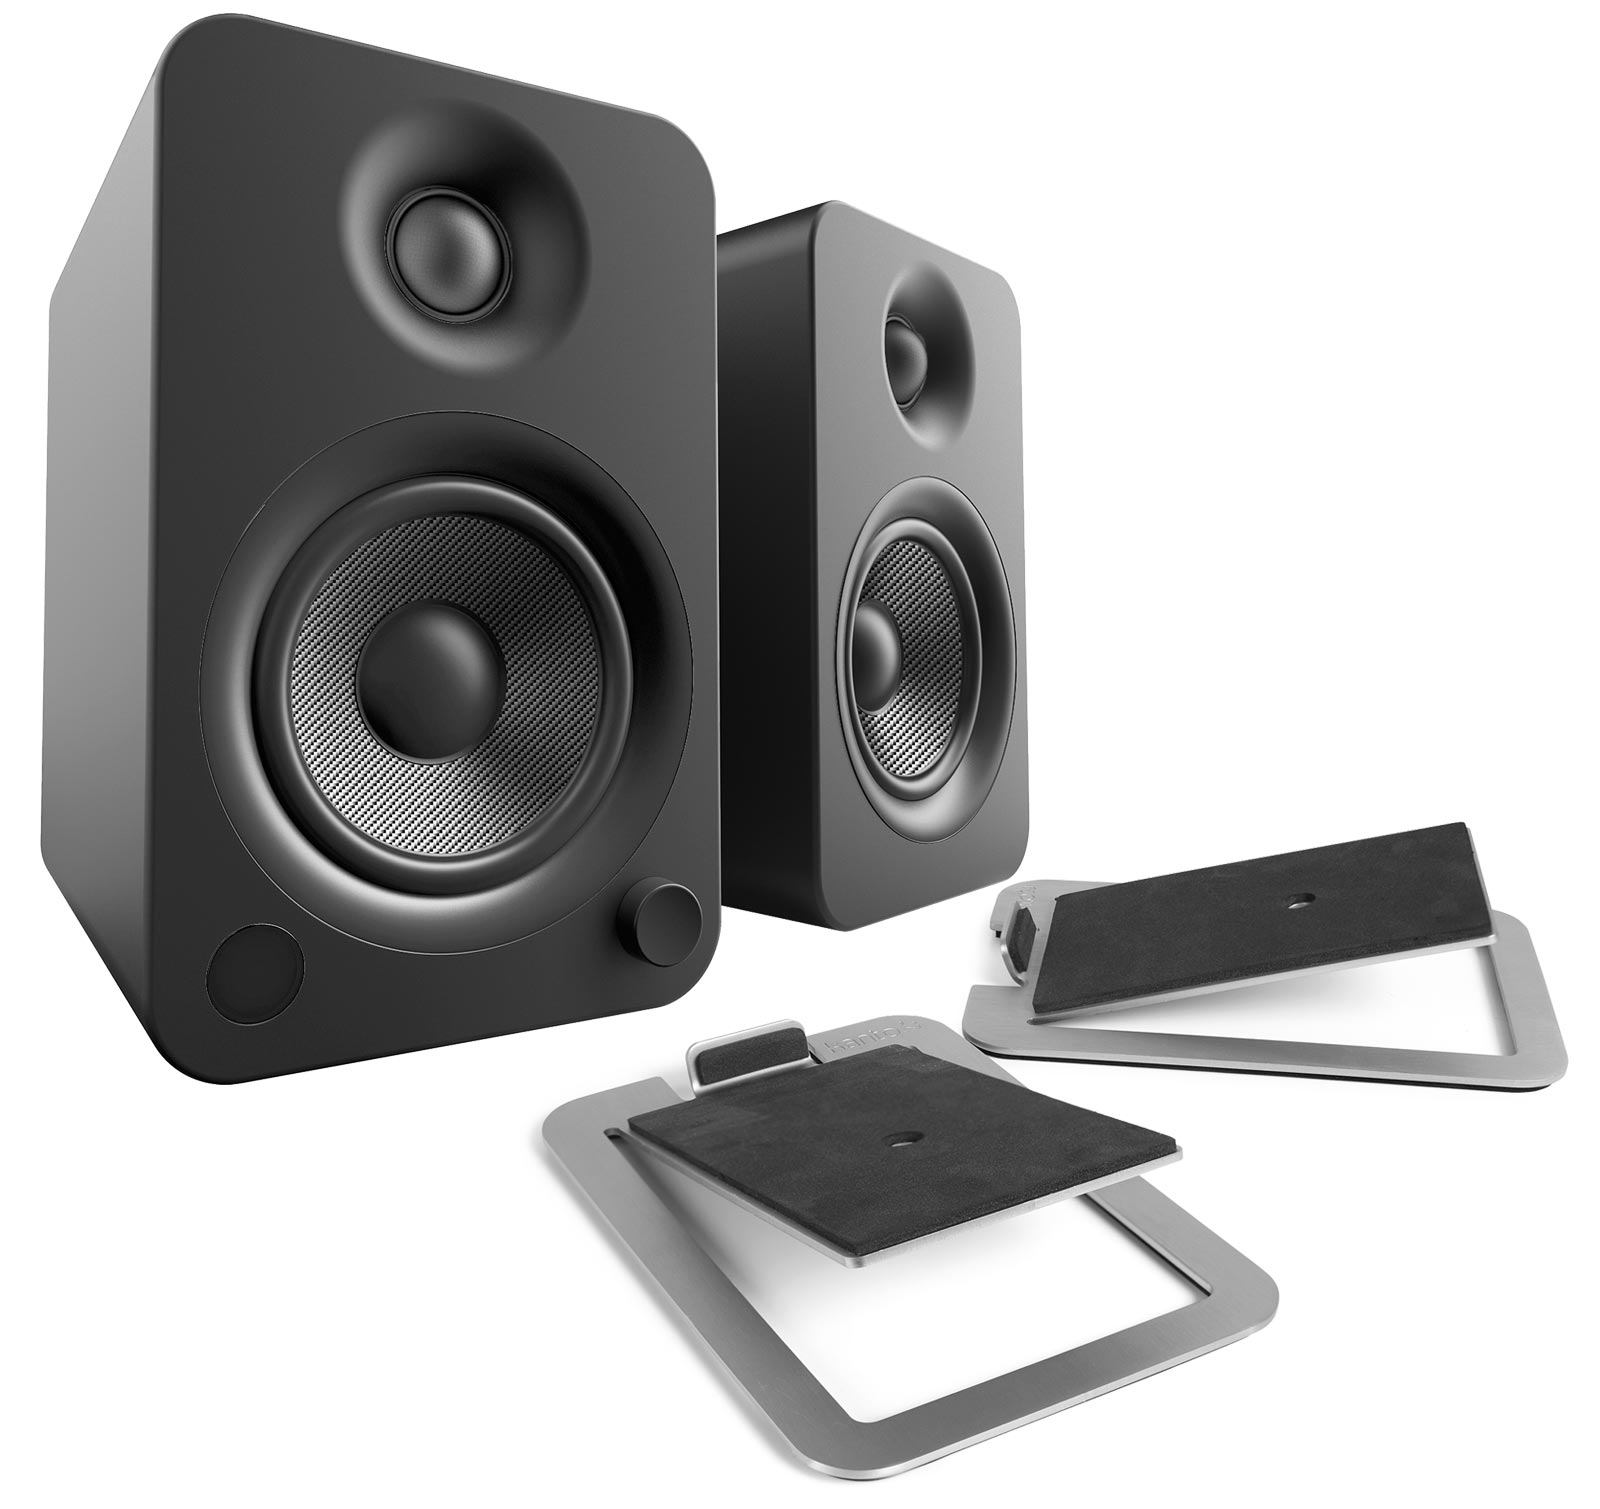 Kanto YU4 Matte Black Powered Speakers with S4 Stainless Steel Desktop Stand Kit